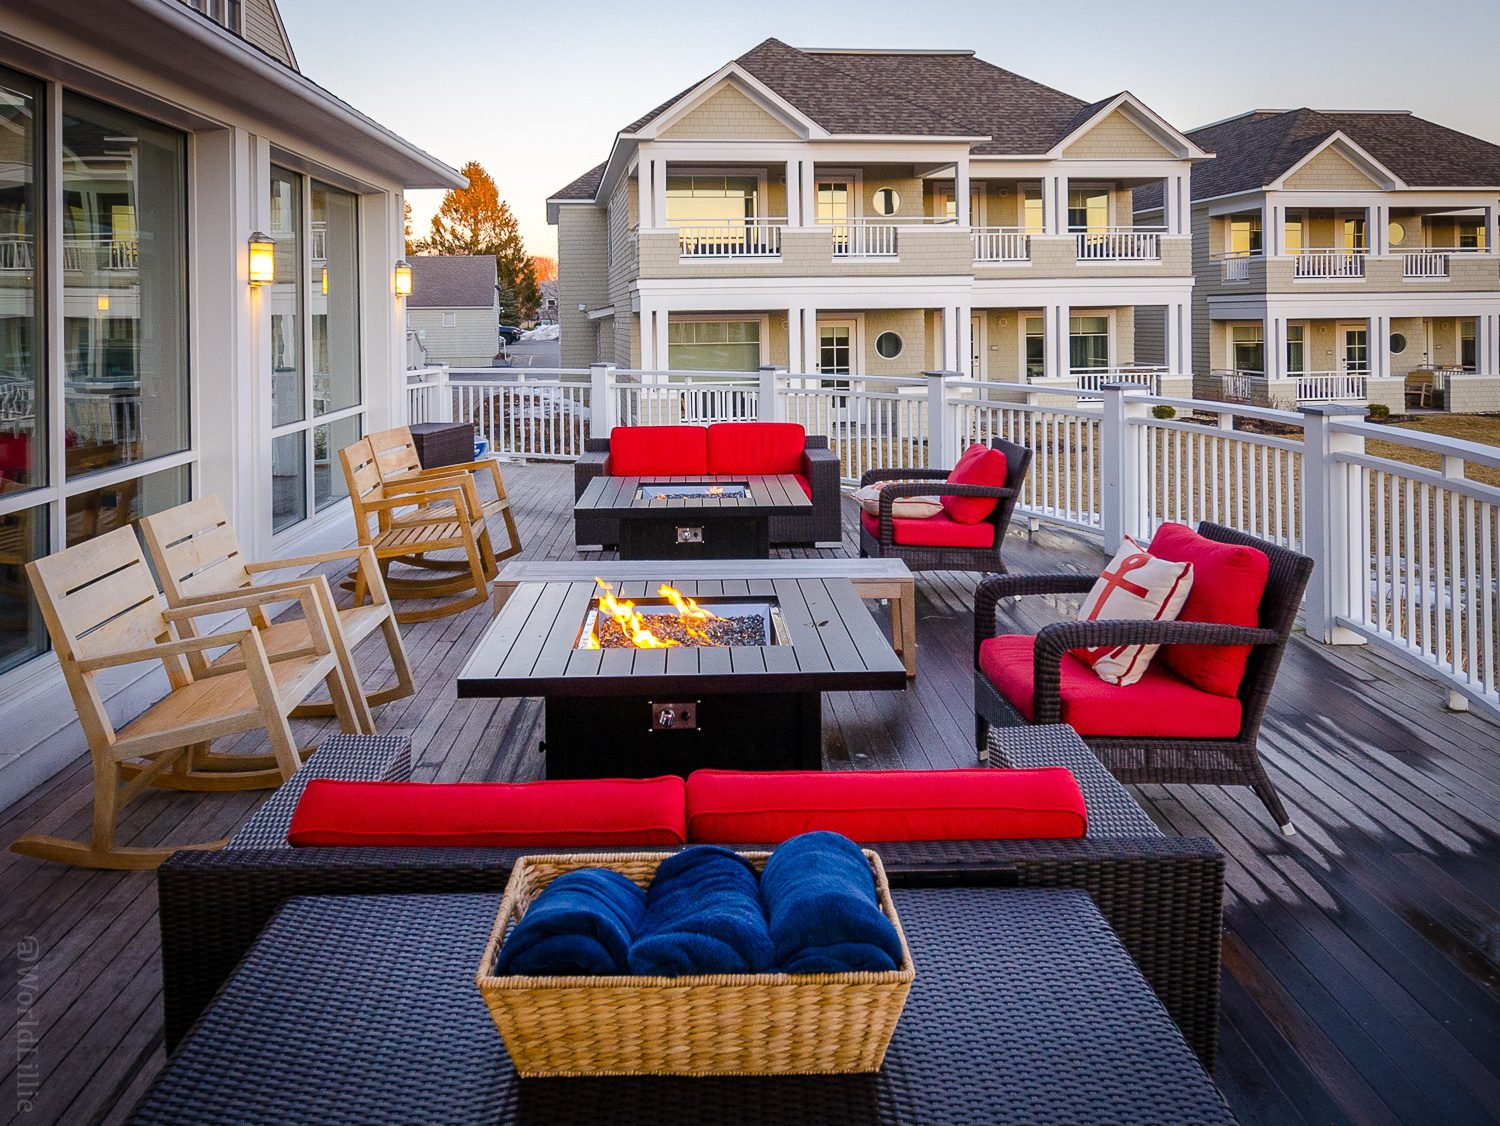 Inn by the Sea Maine Resort: Outdoor firepit patio